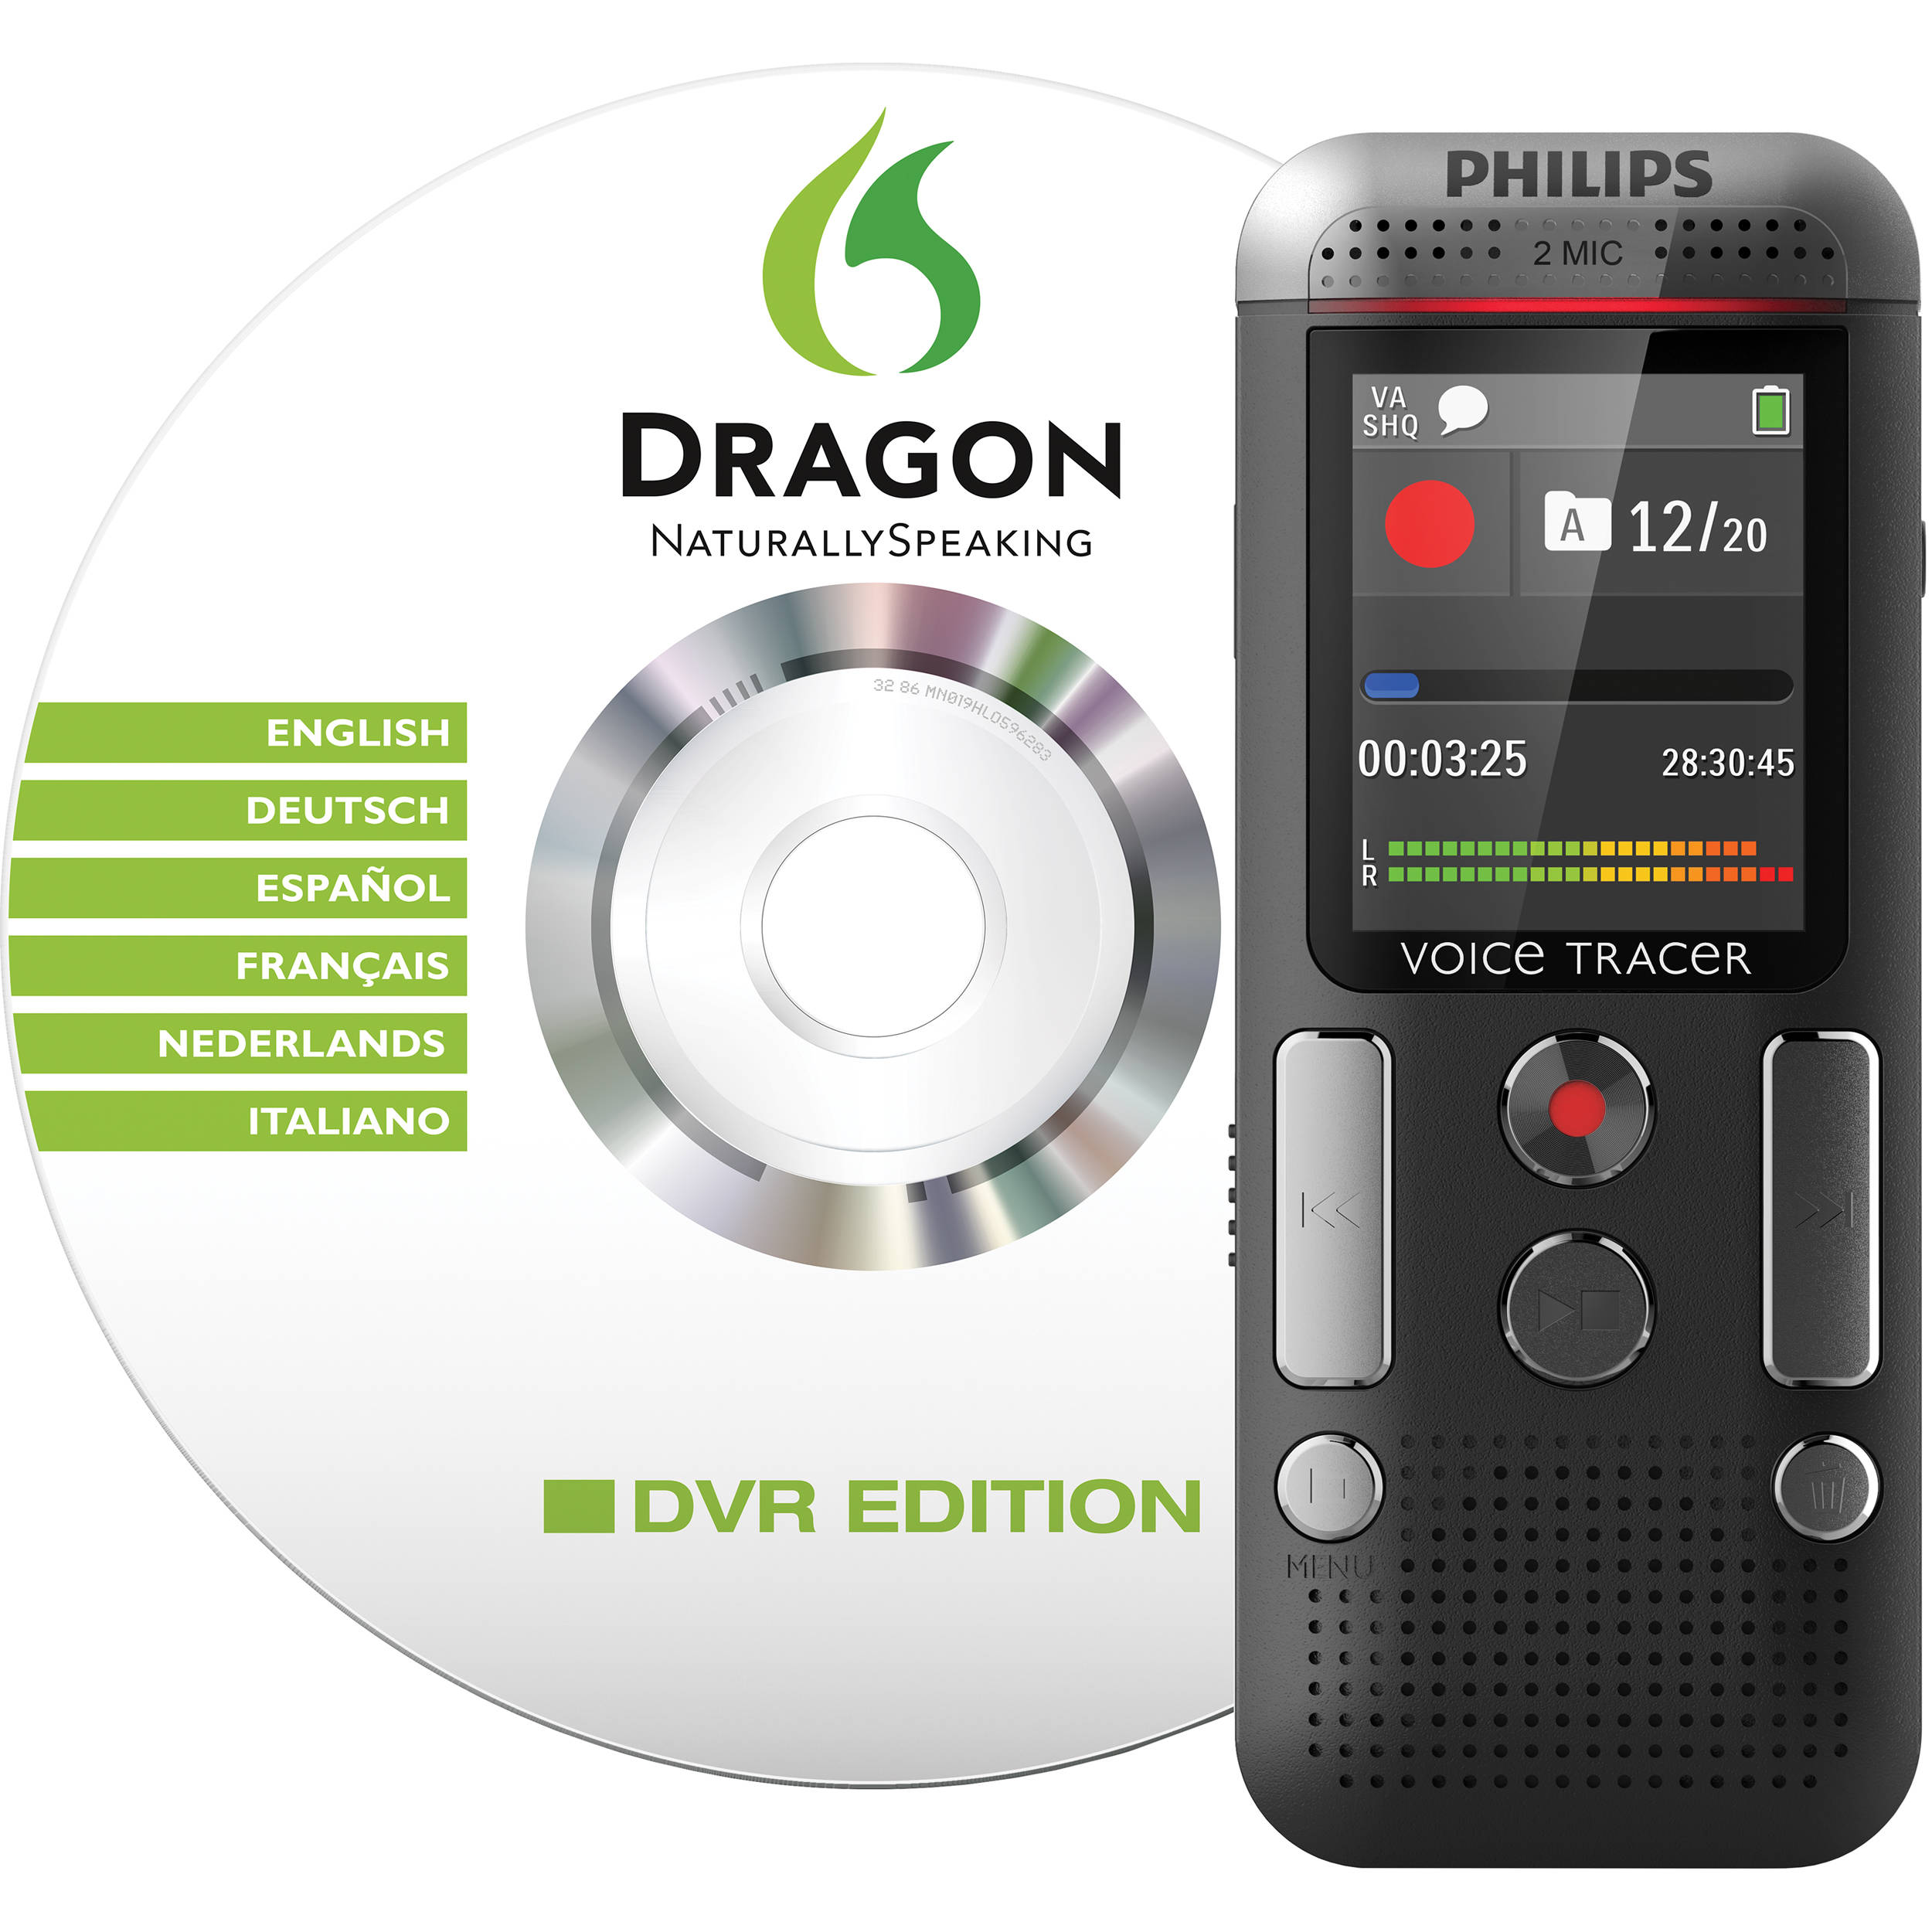 Philips Dvt Digital Voice